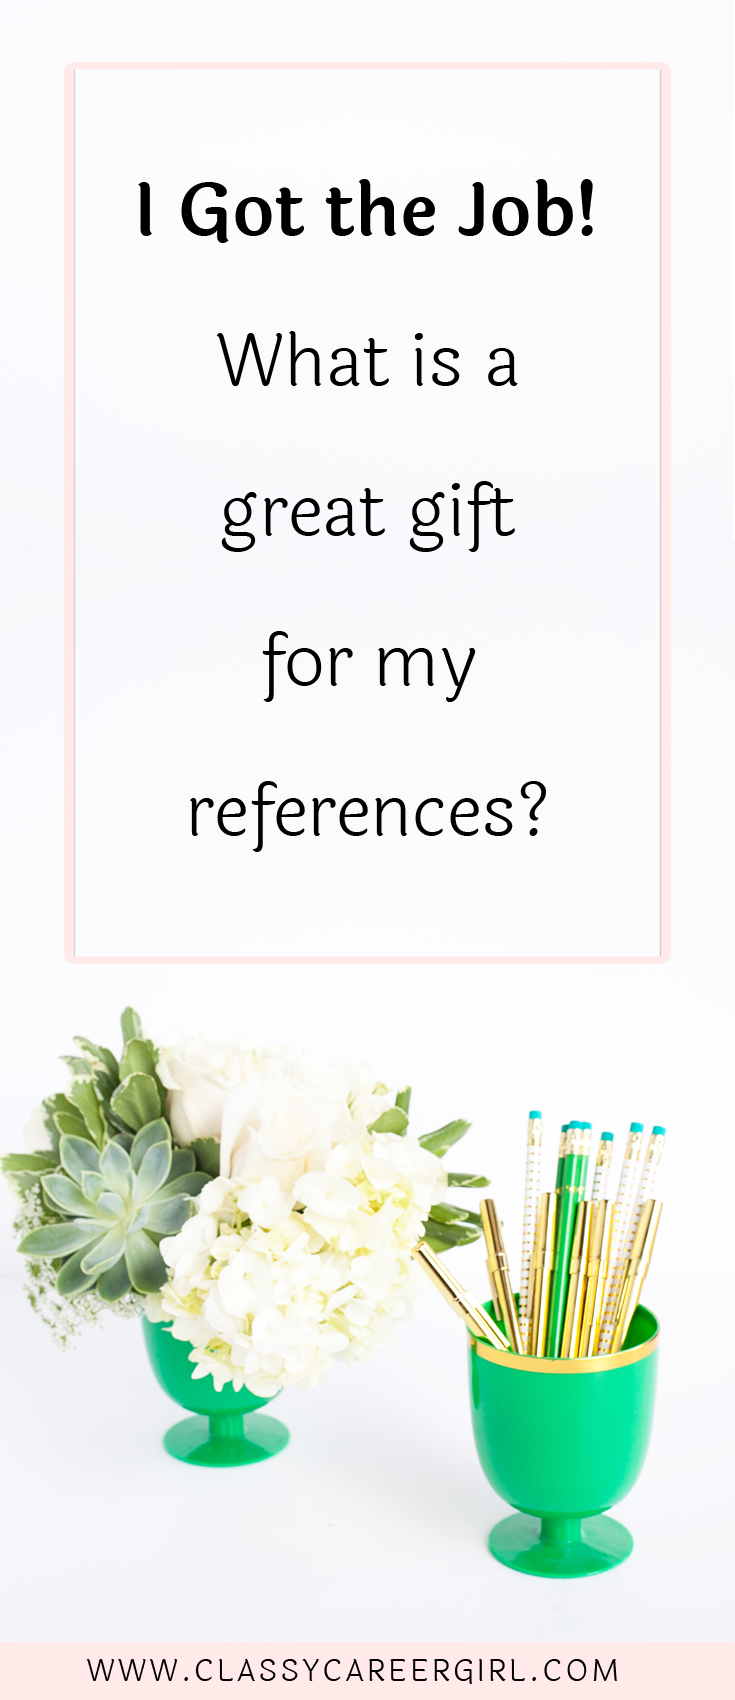 I got the job what is a great gift for my references what is a great gift for my references classy career girl negle Gallery